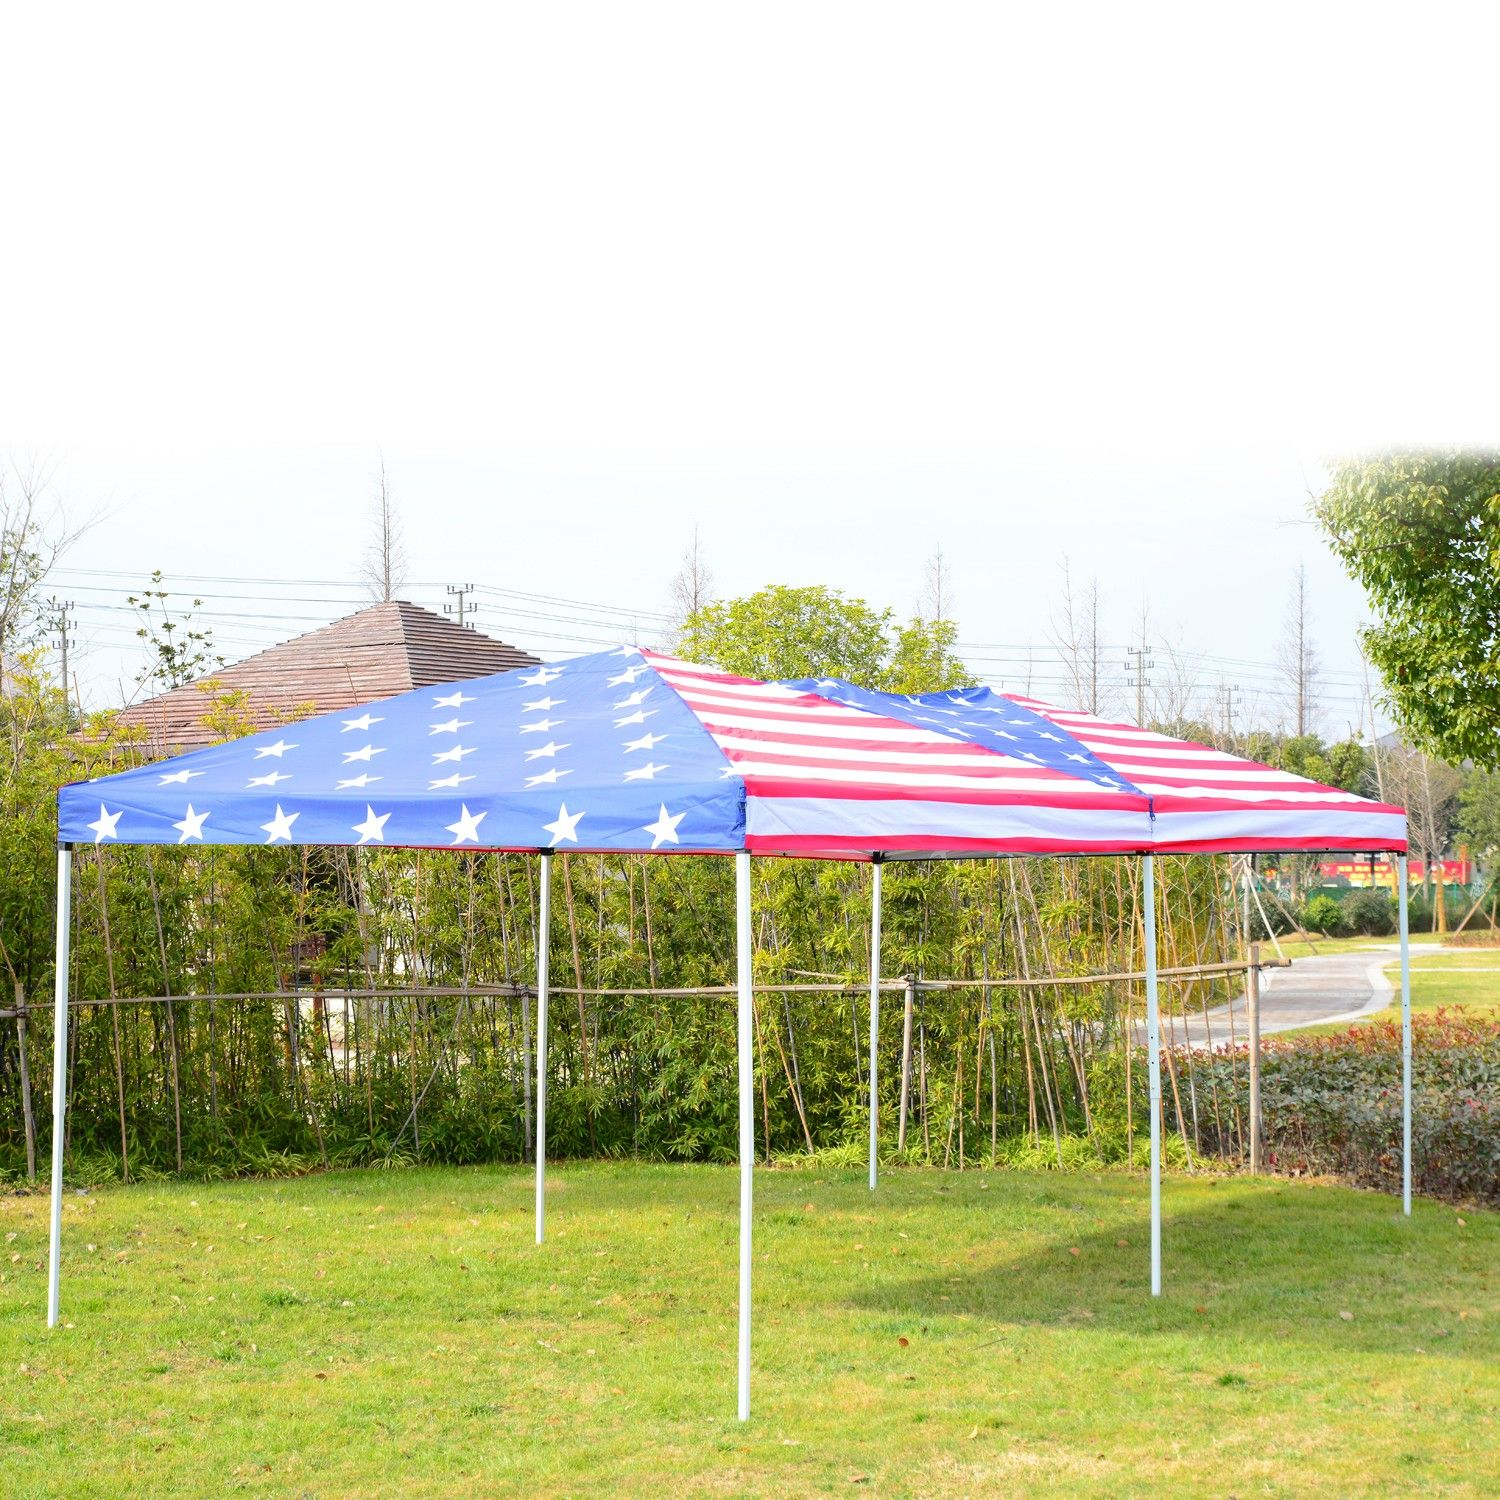 Outsunny 10 X 20 Pop Up Canopy Shelter Party Tent With Mesh Walls American Flag Tents Canopies Gazebos Party Tent Canopy Shelter Pop Up Canopy Tent